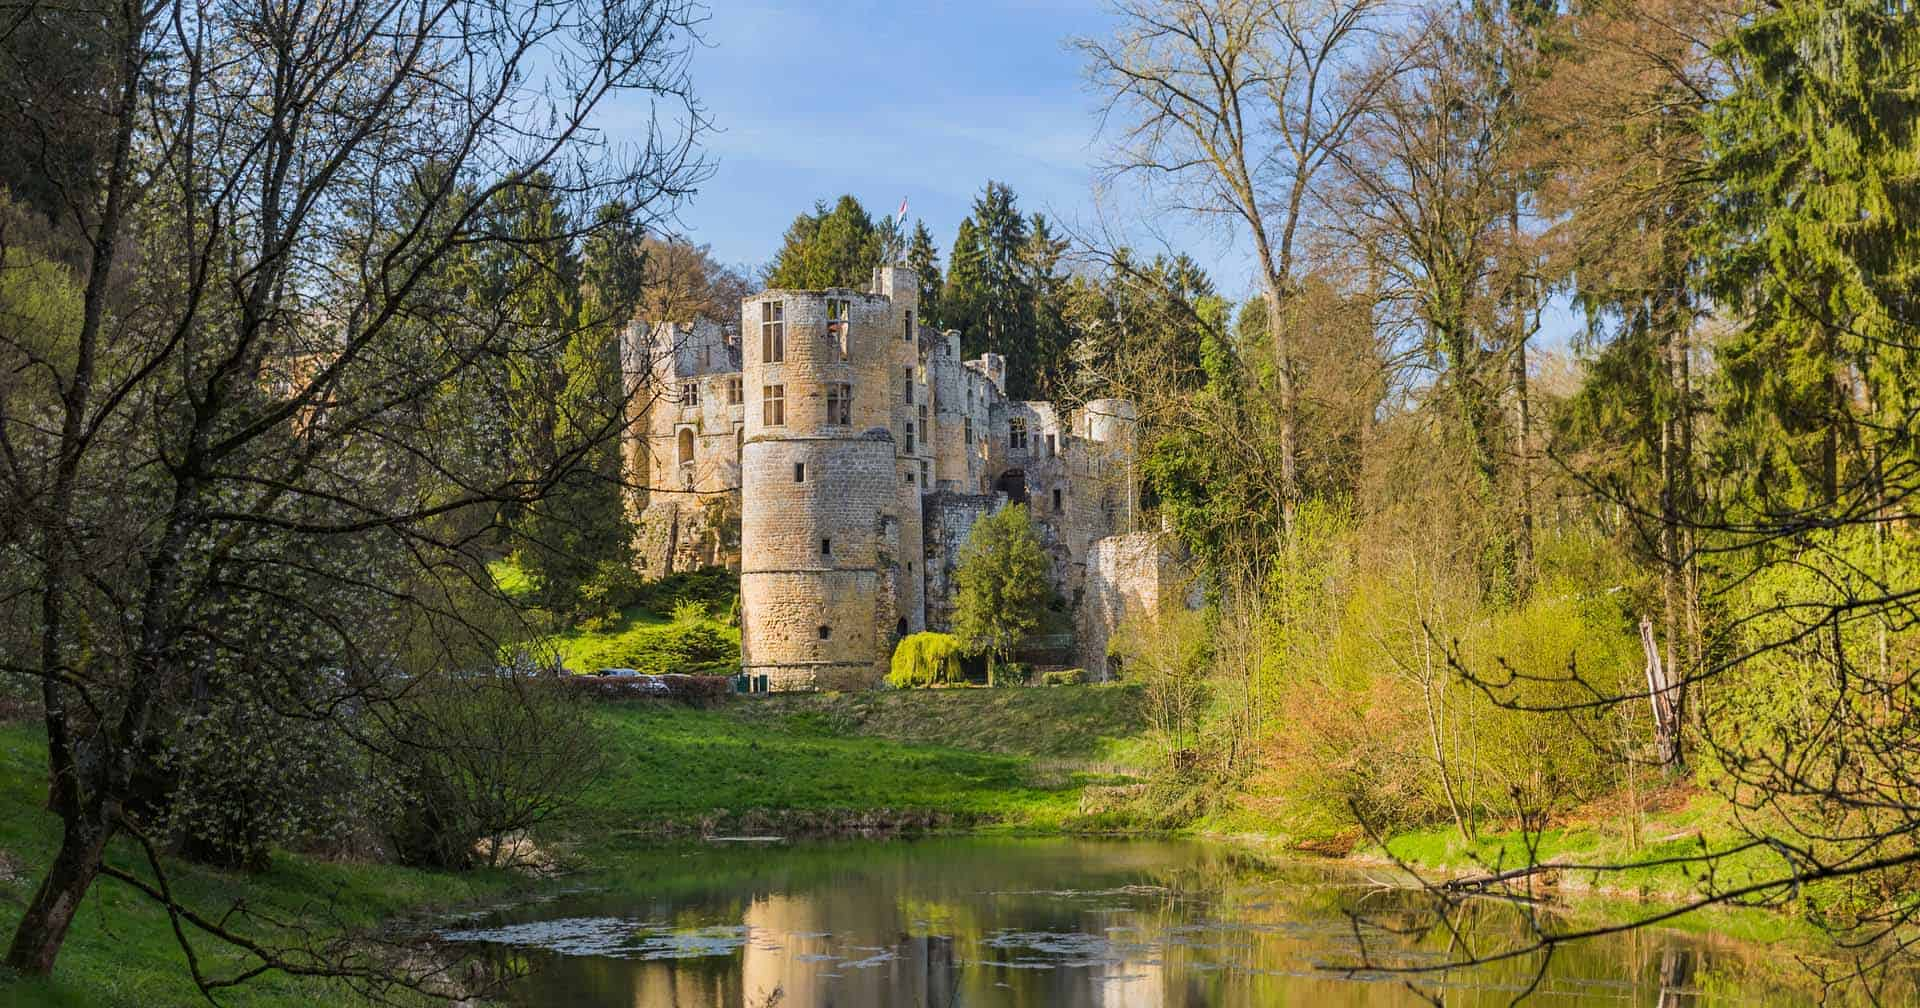 castles in luxembourg featured